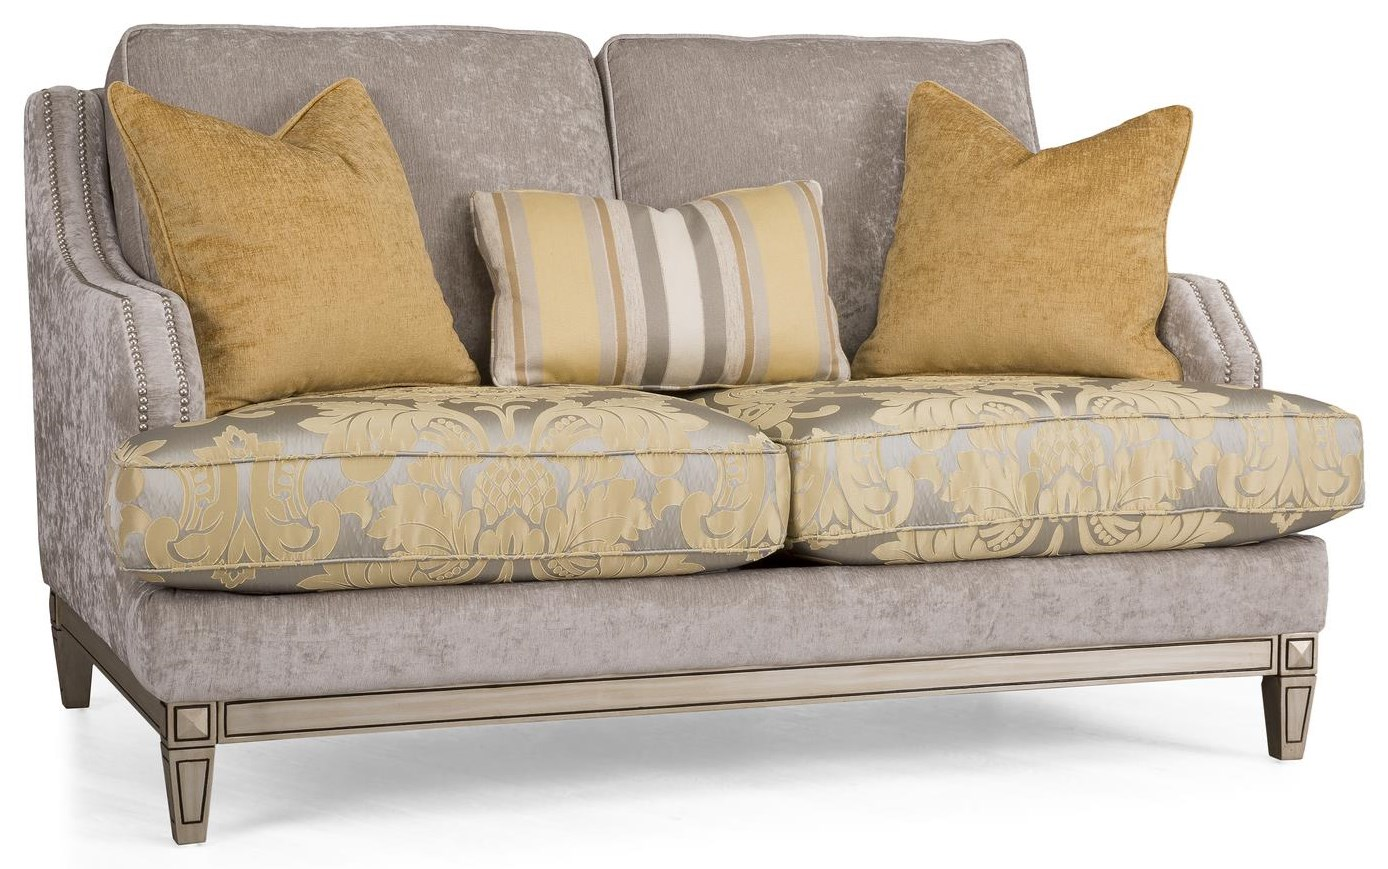 6251 Series Loveseat by Decor-Rest at Johnny Janosik